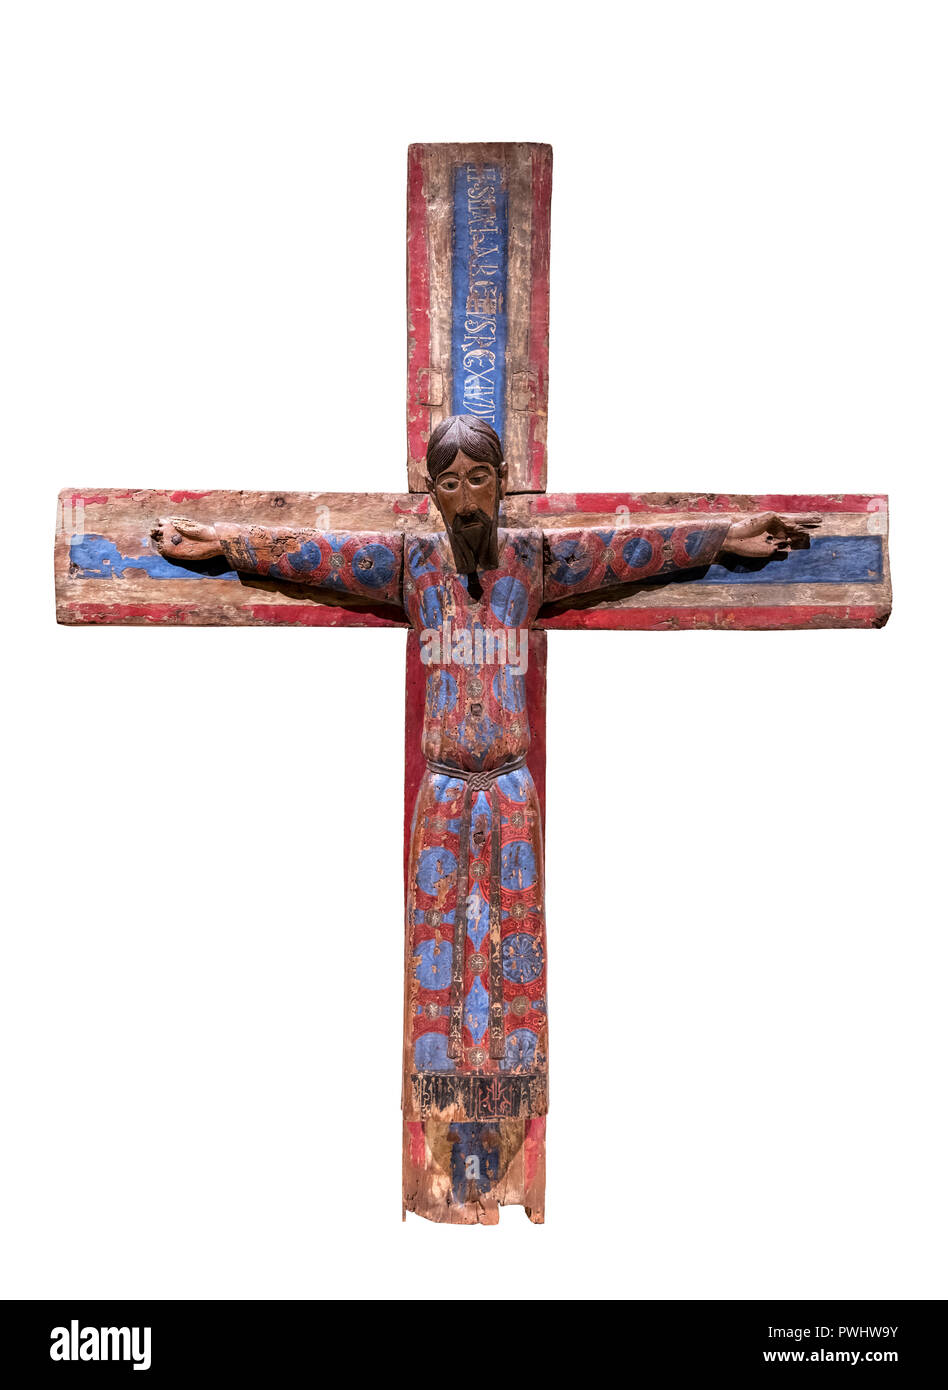 The Majestat Batlló (the Batllo Majesty), a 12th century crucifix dating from the 12th century AD, polychrome tempera on wood - Stock Image